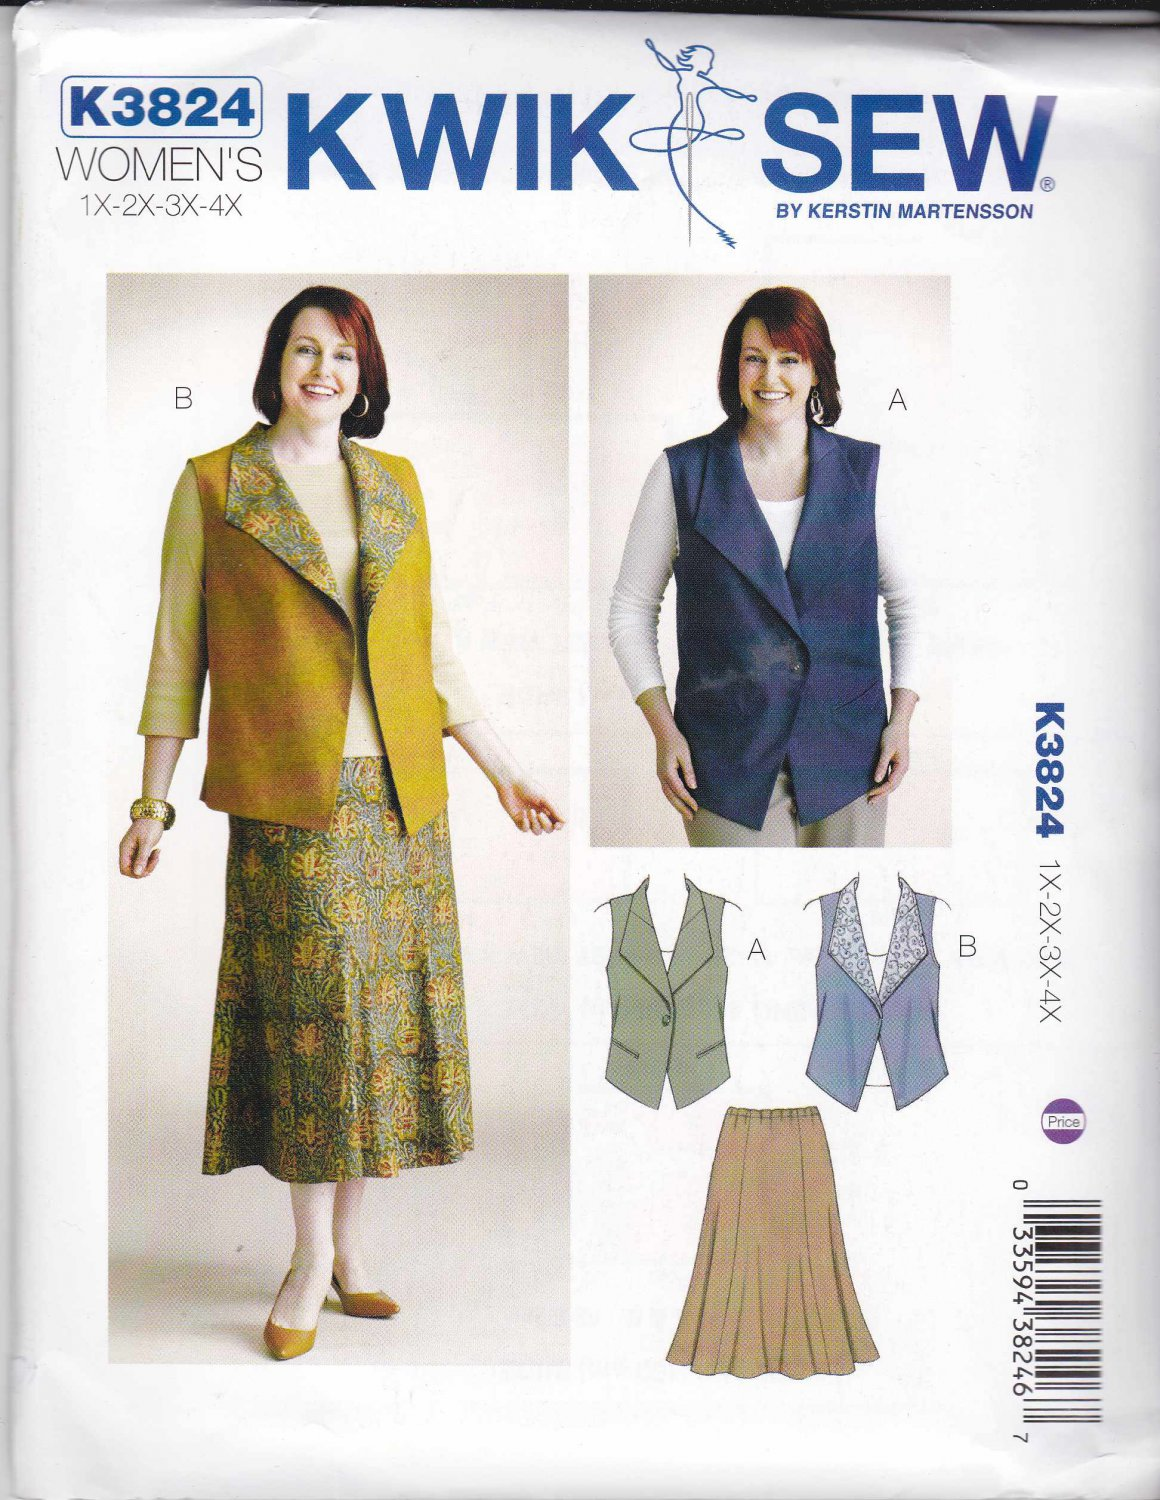 Kwik Sew Sewing Pattern 3824 Women's Plus Sizes 1X-4X Button Front Vest Flared Pull-on Skirt